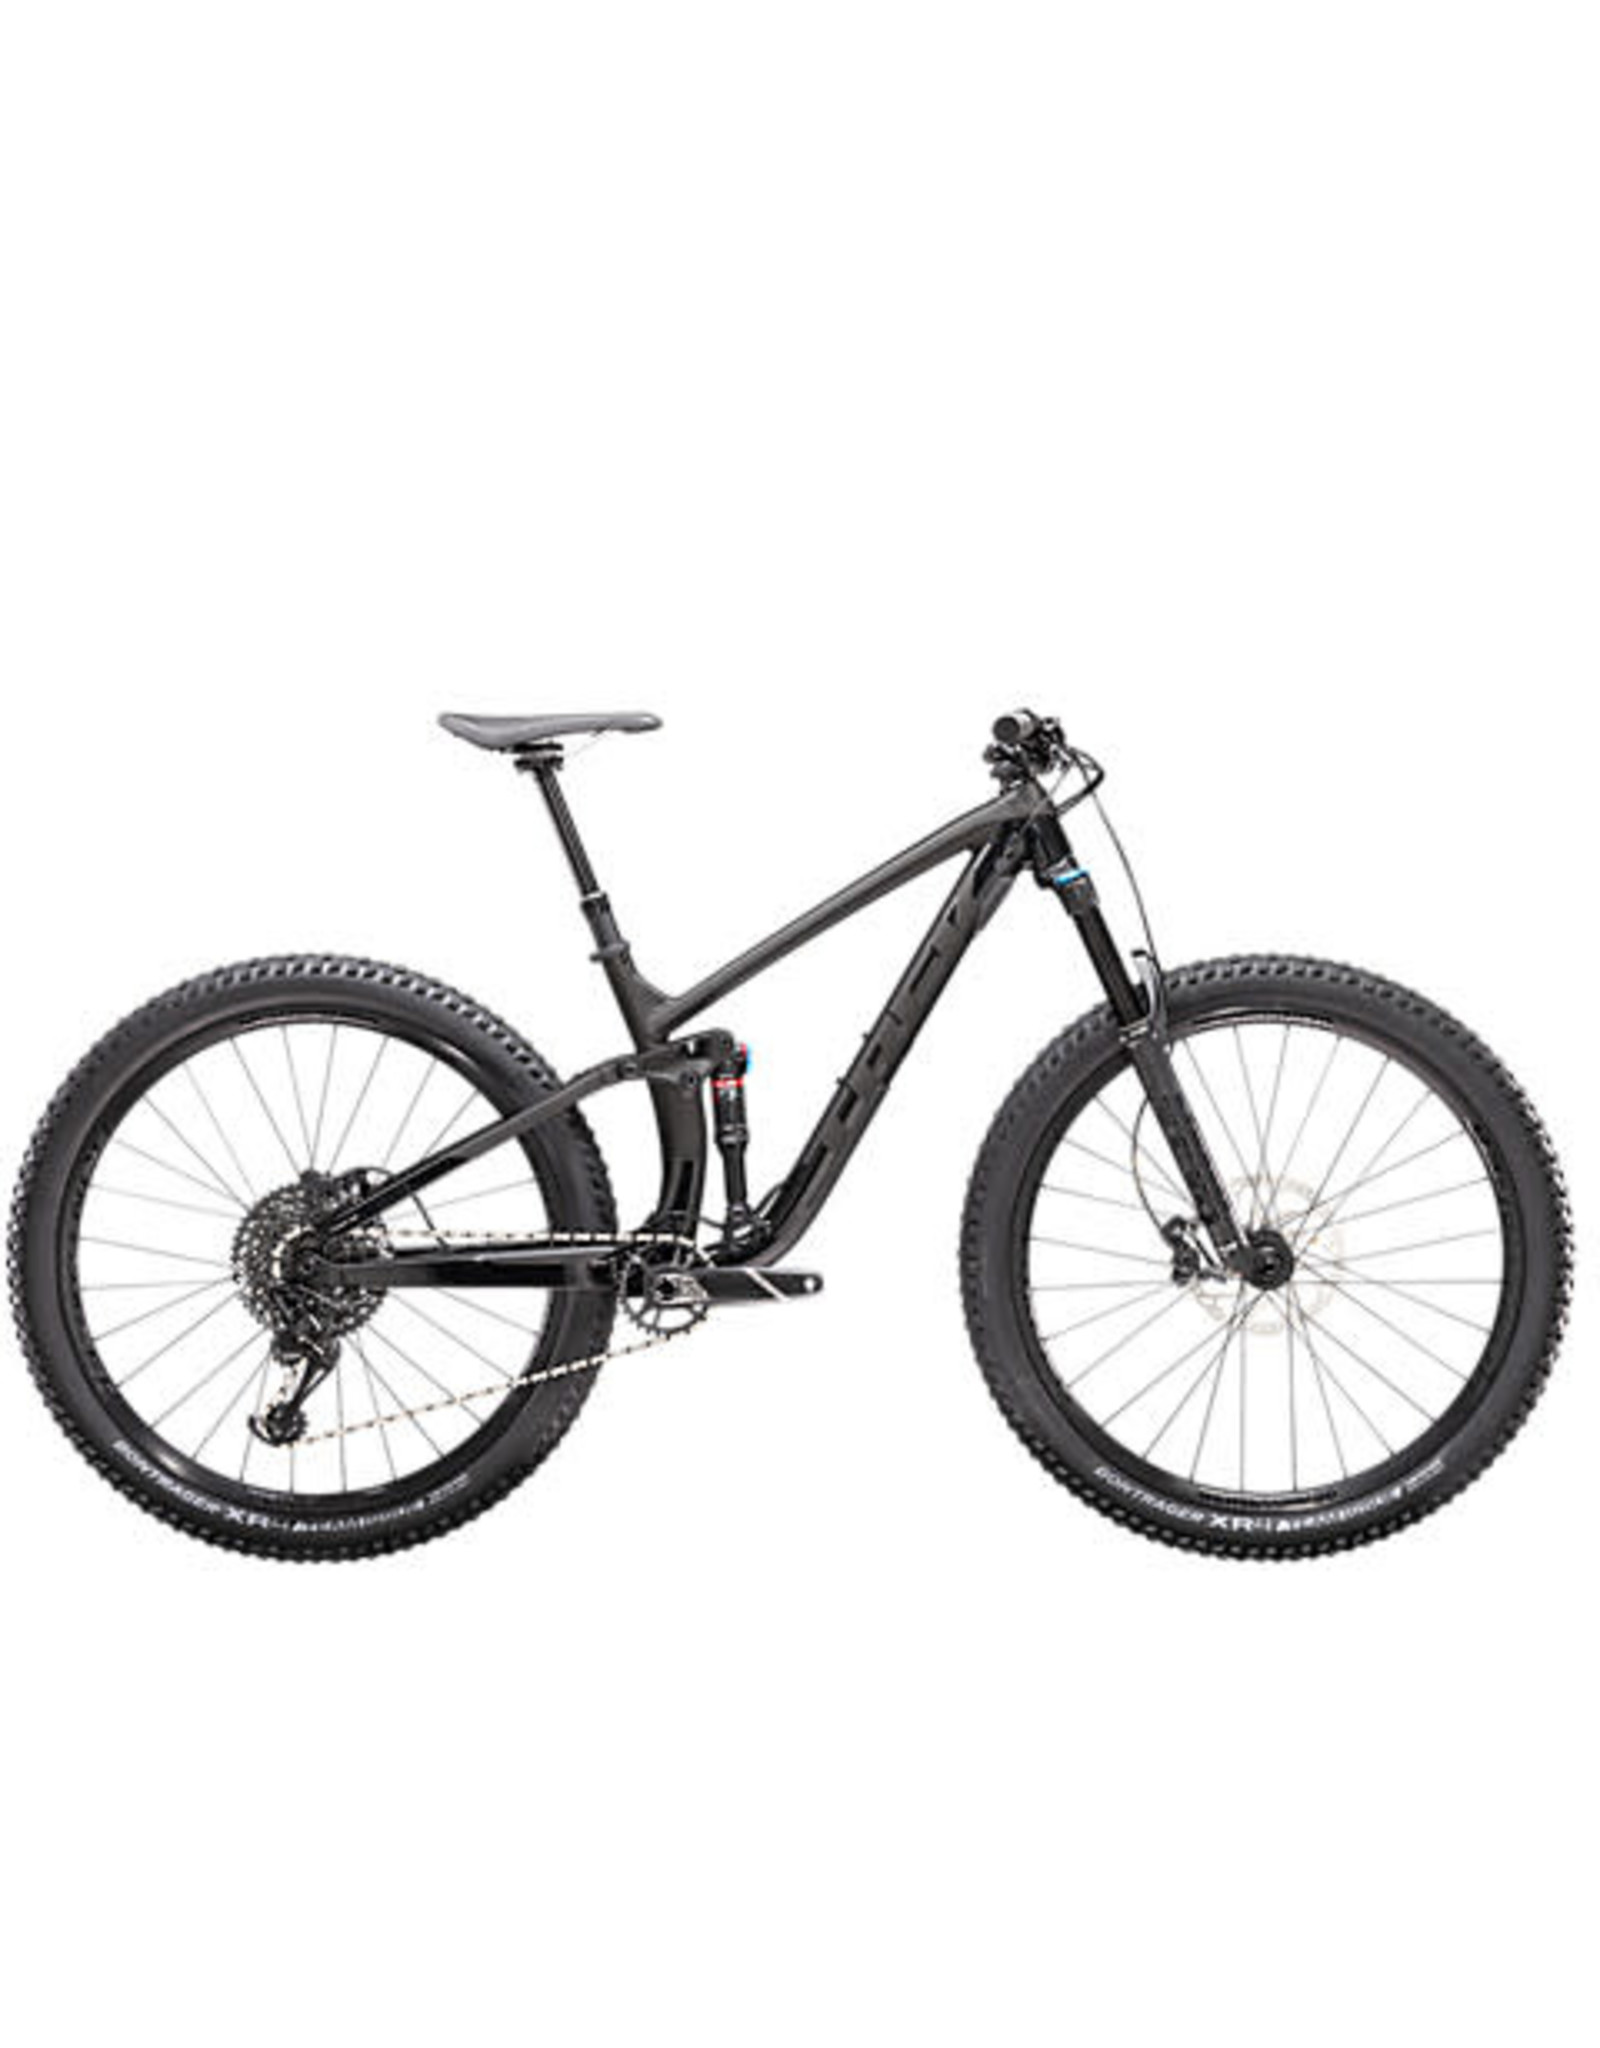 TREK BIKE Trek Fuel EX 8 GX 2020 LG